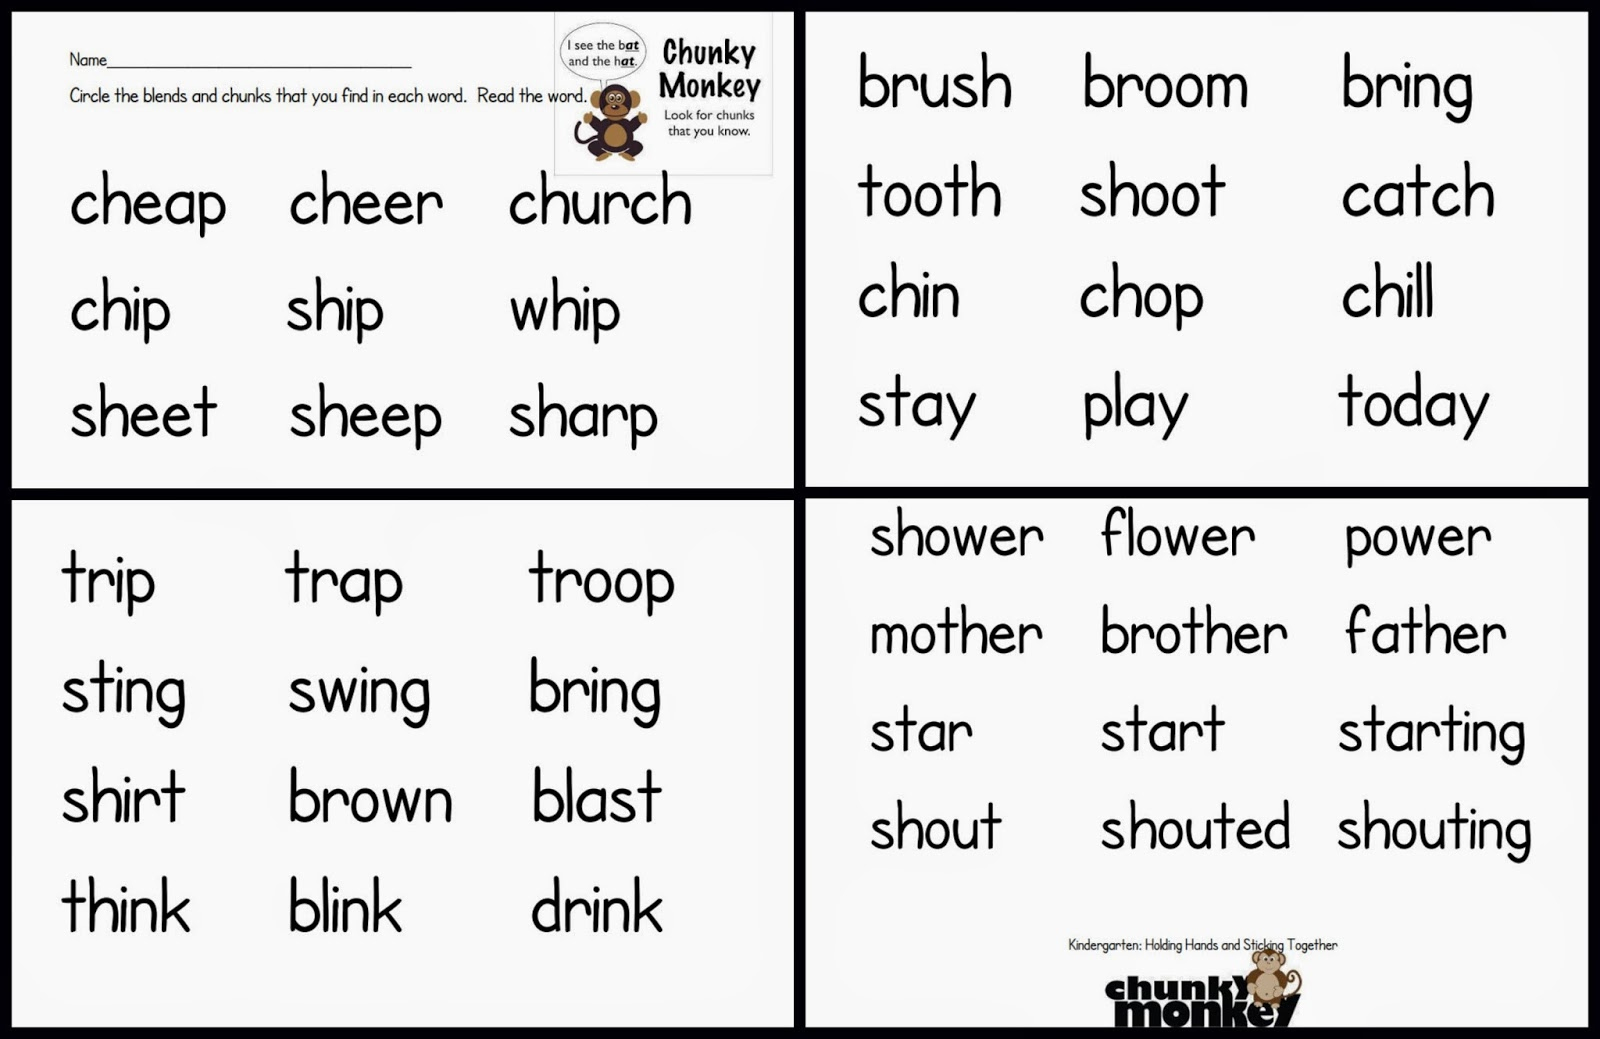 Chunking Words Worksheet Kindergarten: holding hands and sticking ...